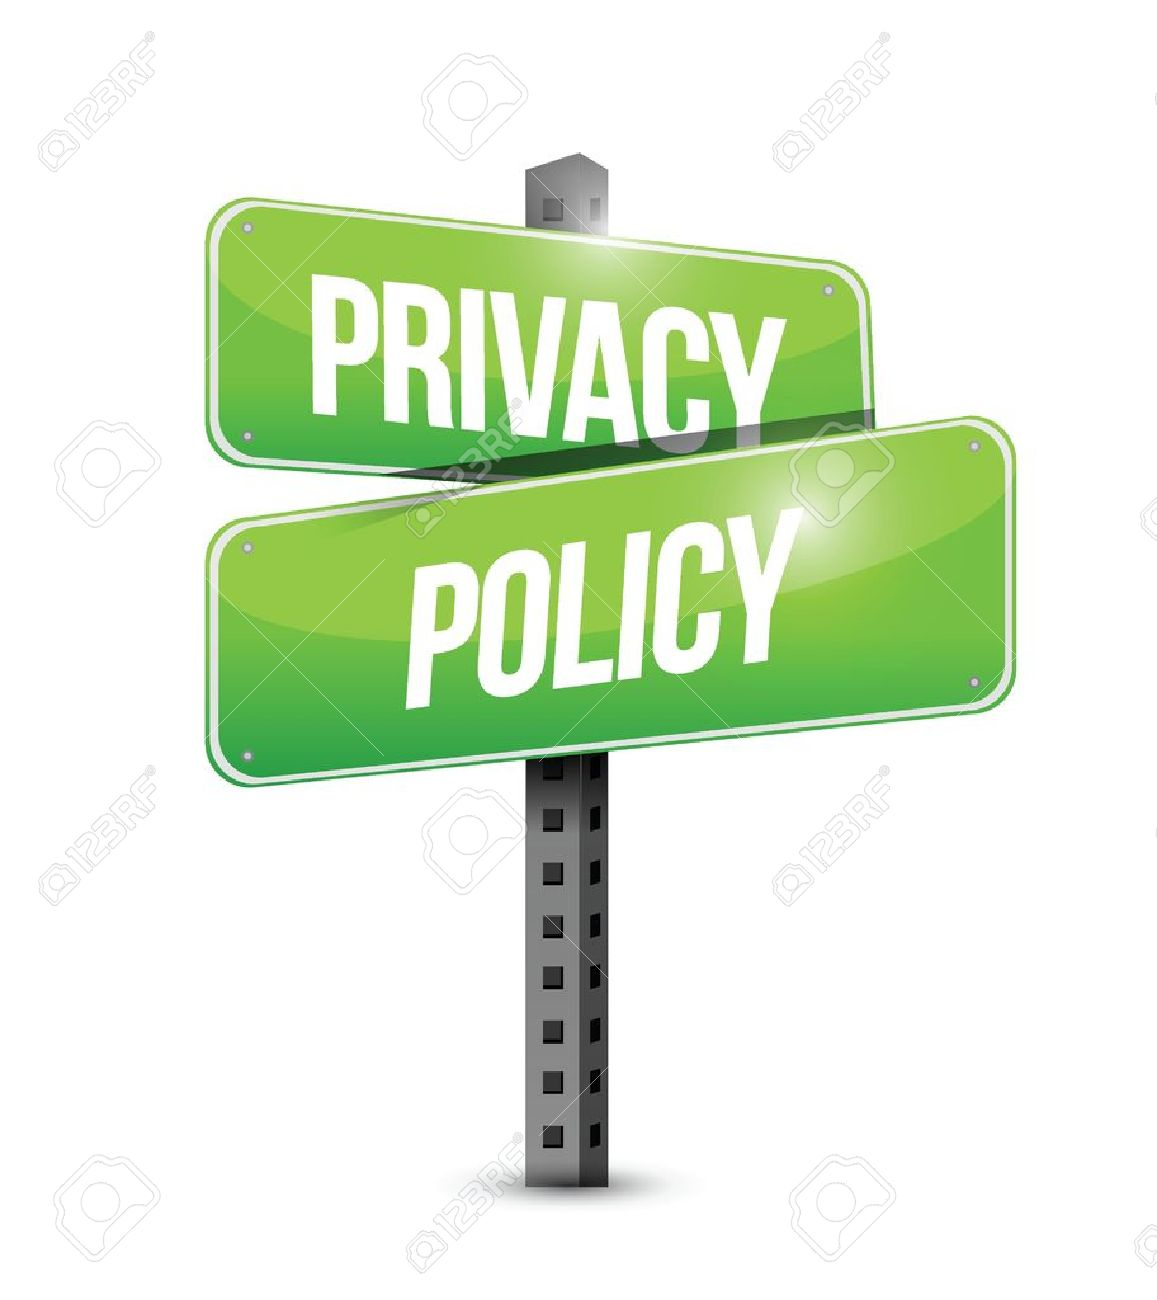 Privacy Policy: Privacy Policy Clipart